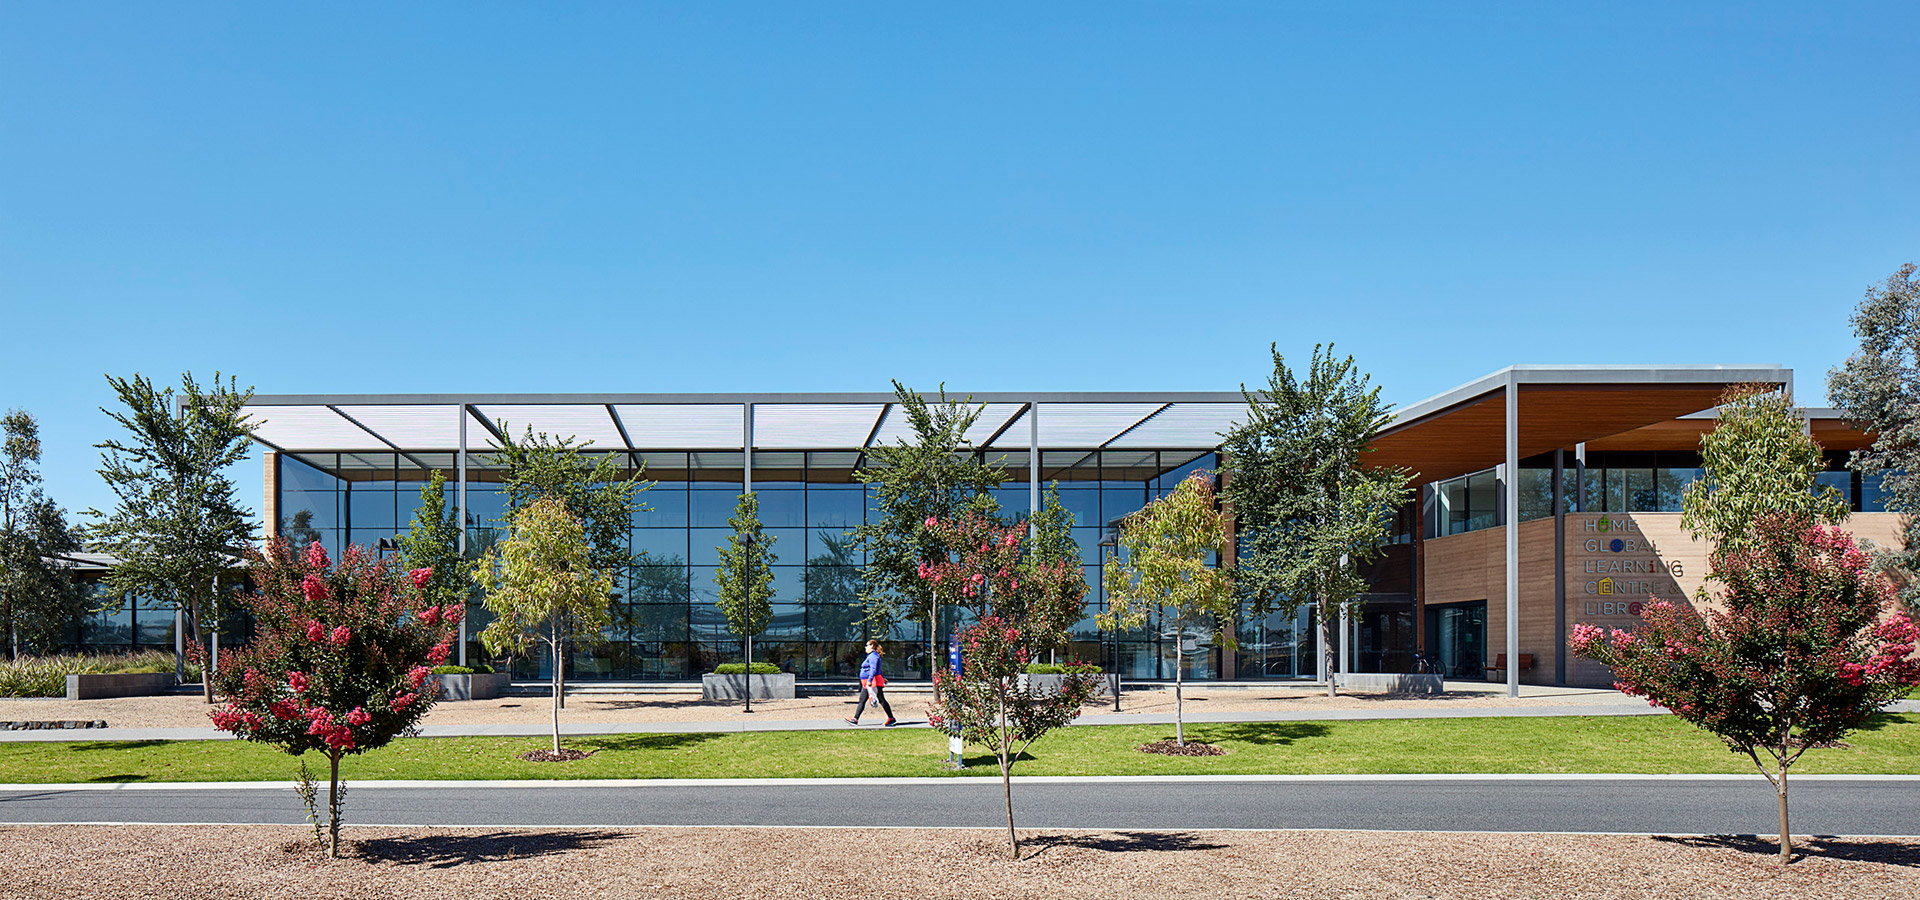 Craigieburn Library designed by fjmt